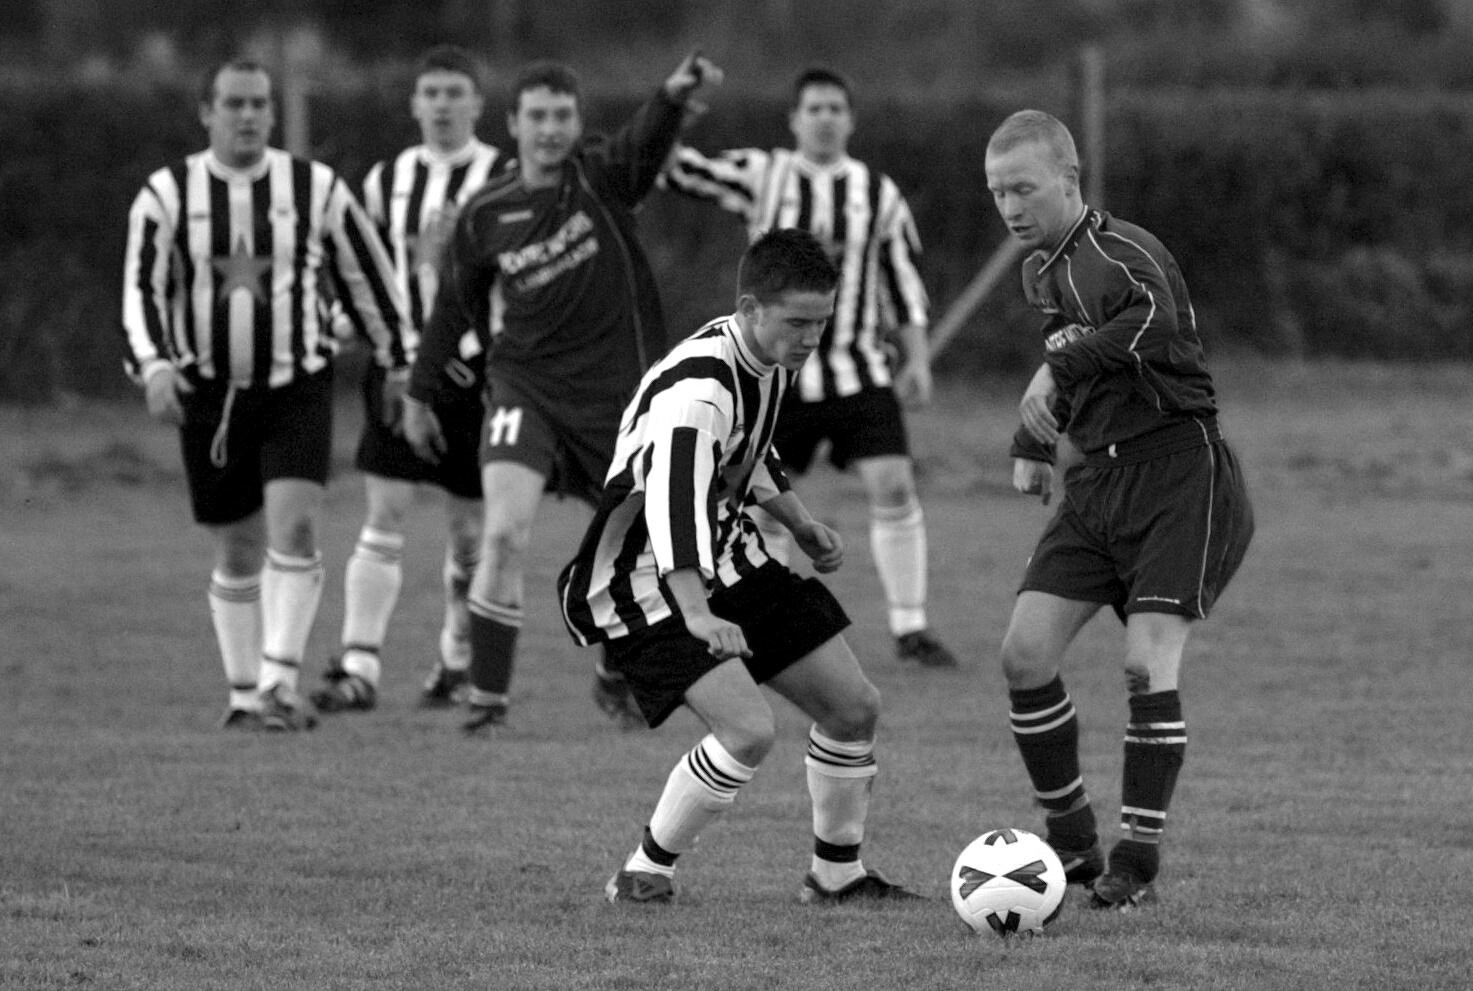 BYGONES: It's derby day in 2004 as Rhewl tackle Llanrhaeadr